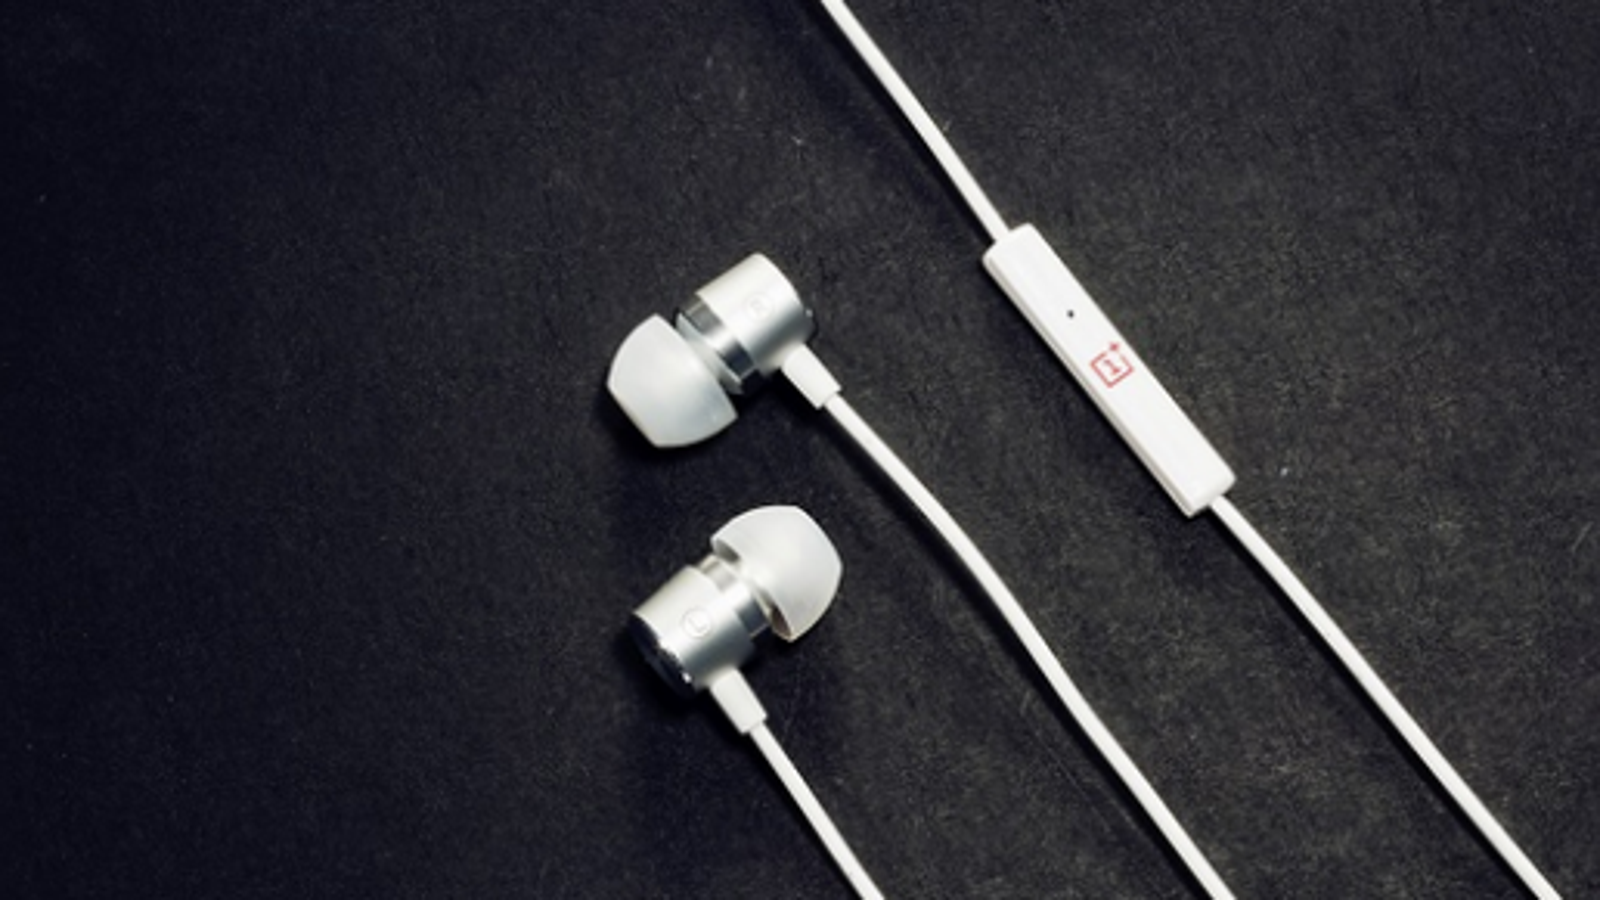 Earbuds qc35 - new apple earbuds adaptor